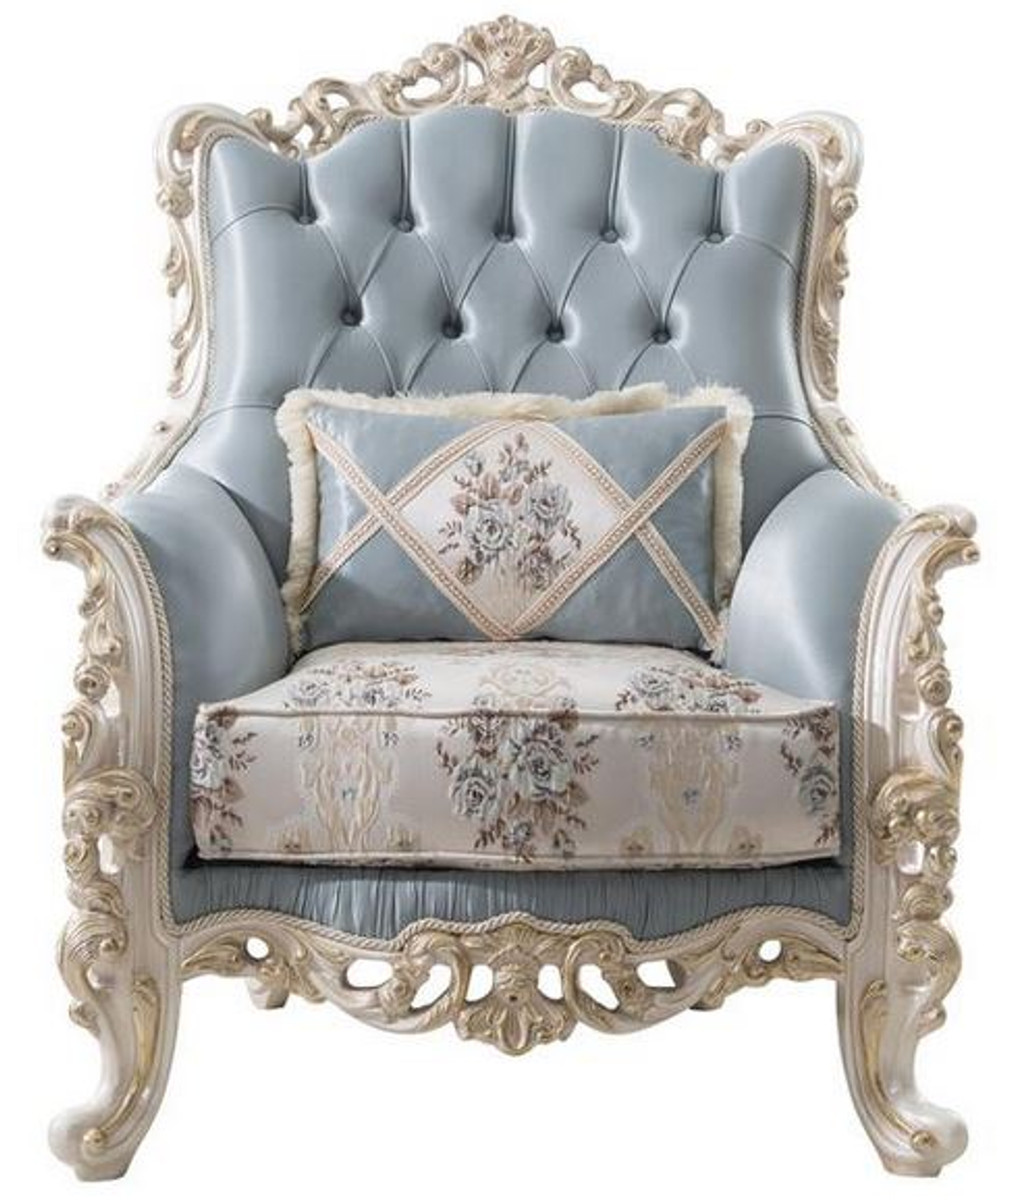 Casa Padrino Luxury Baroque Living Room Armchair With Decorative Pillow Light Blue Cream White Gold 97 X 90 X H 120 Cm Noble Baroque Living Room Furniture